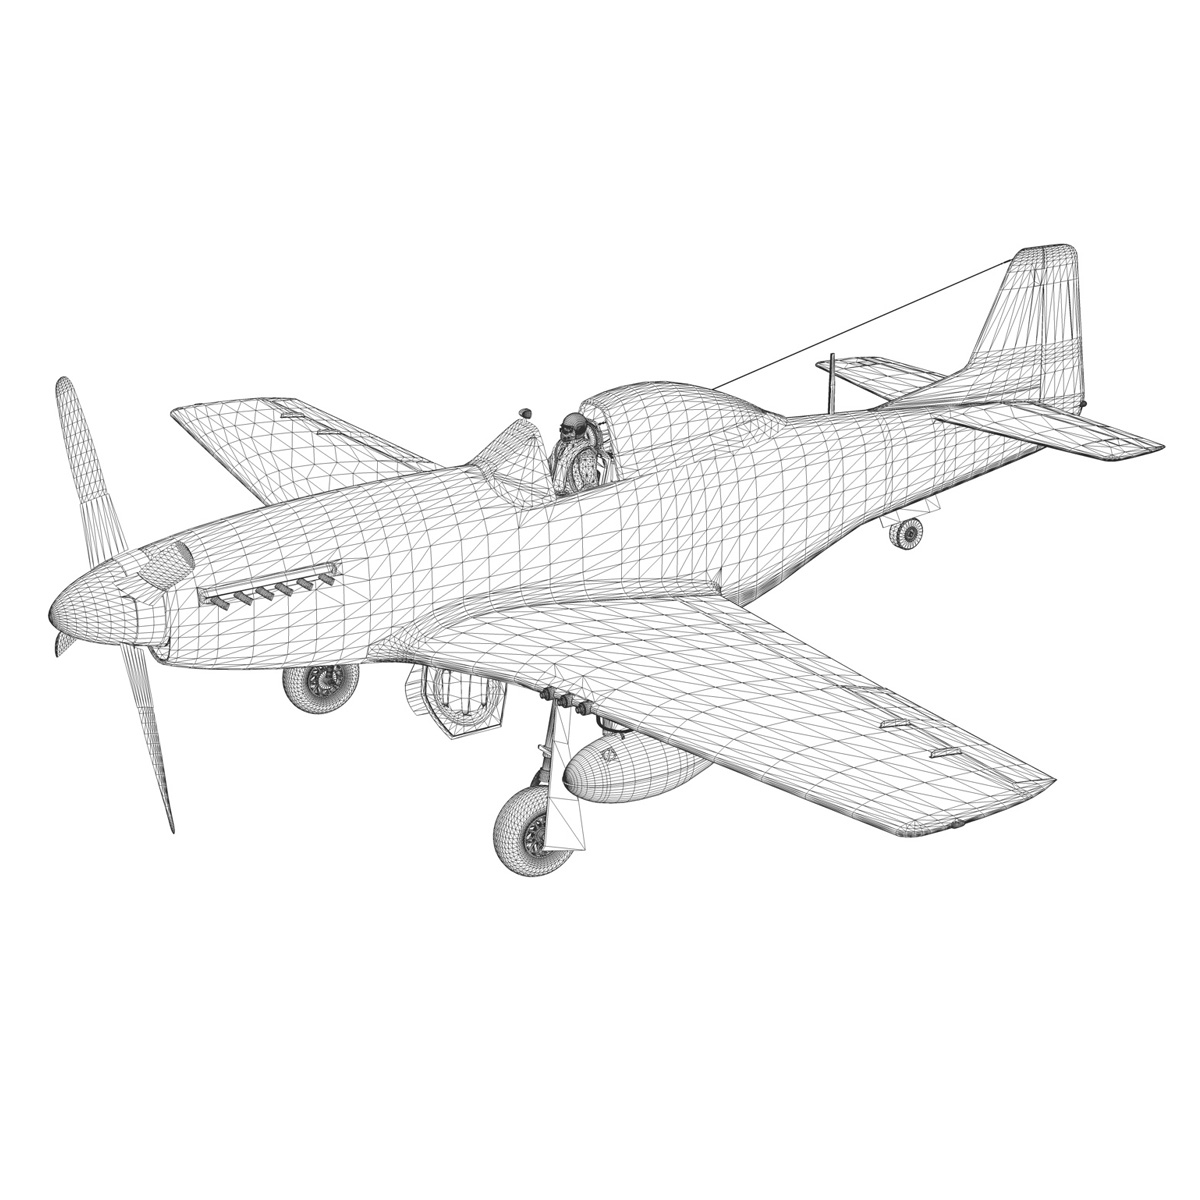 north american p-51 mustang – happy jacks go buggy 3d model fbx c4d lwo obj 280379